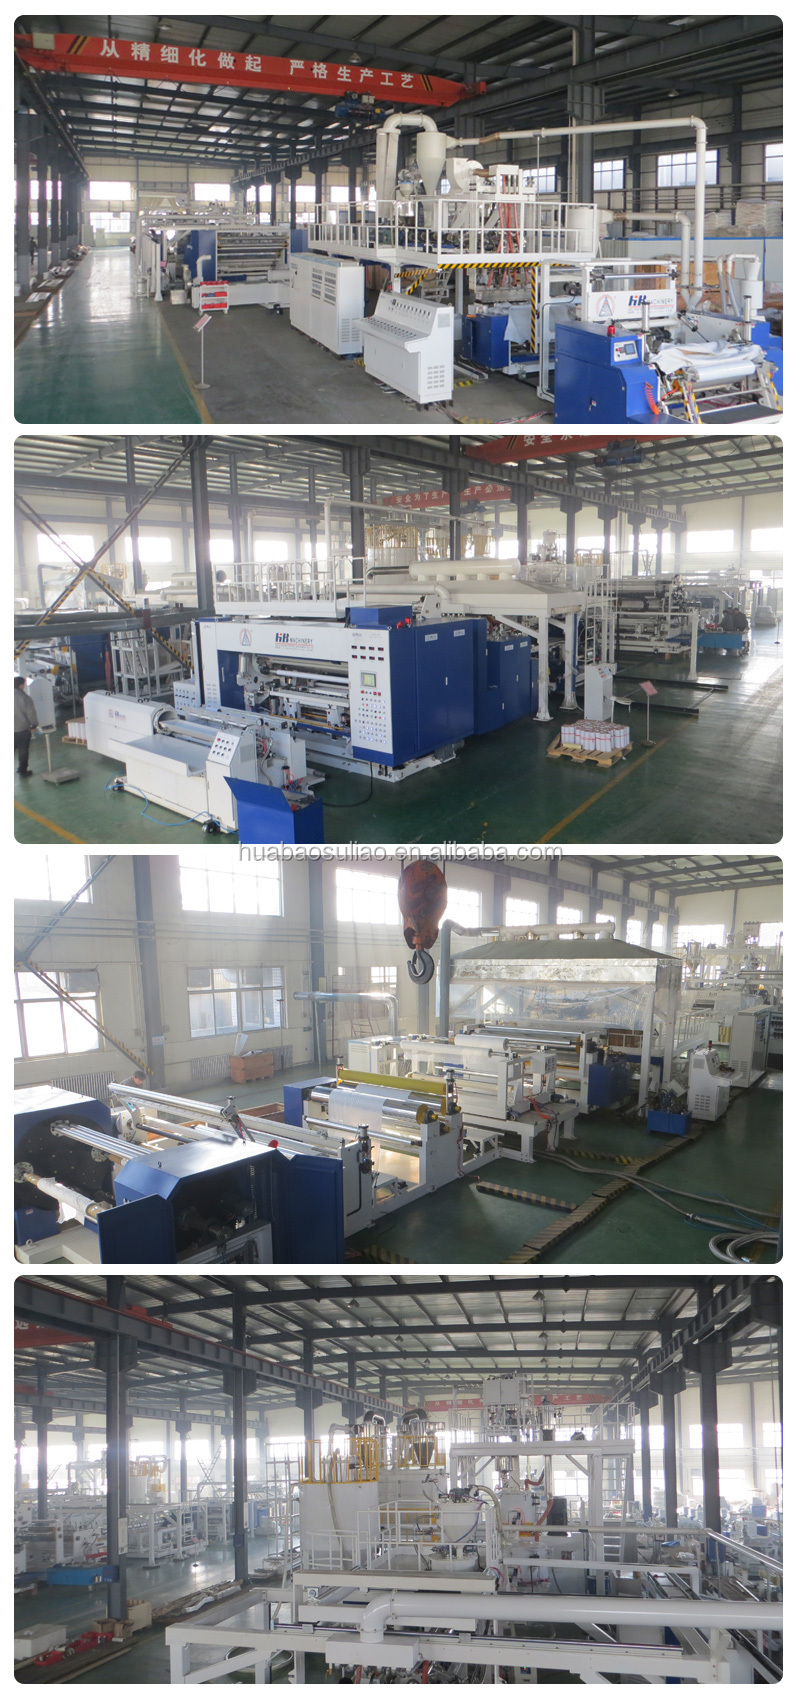 China Suppliers Wholesale Cpet/opet Plastic Extrusion Cast Film ...